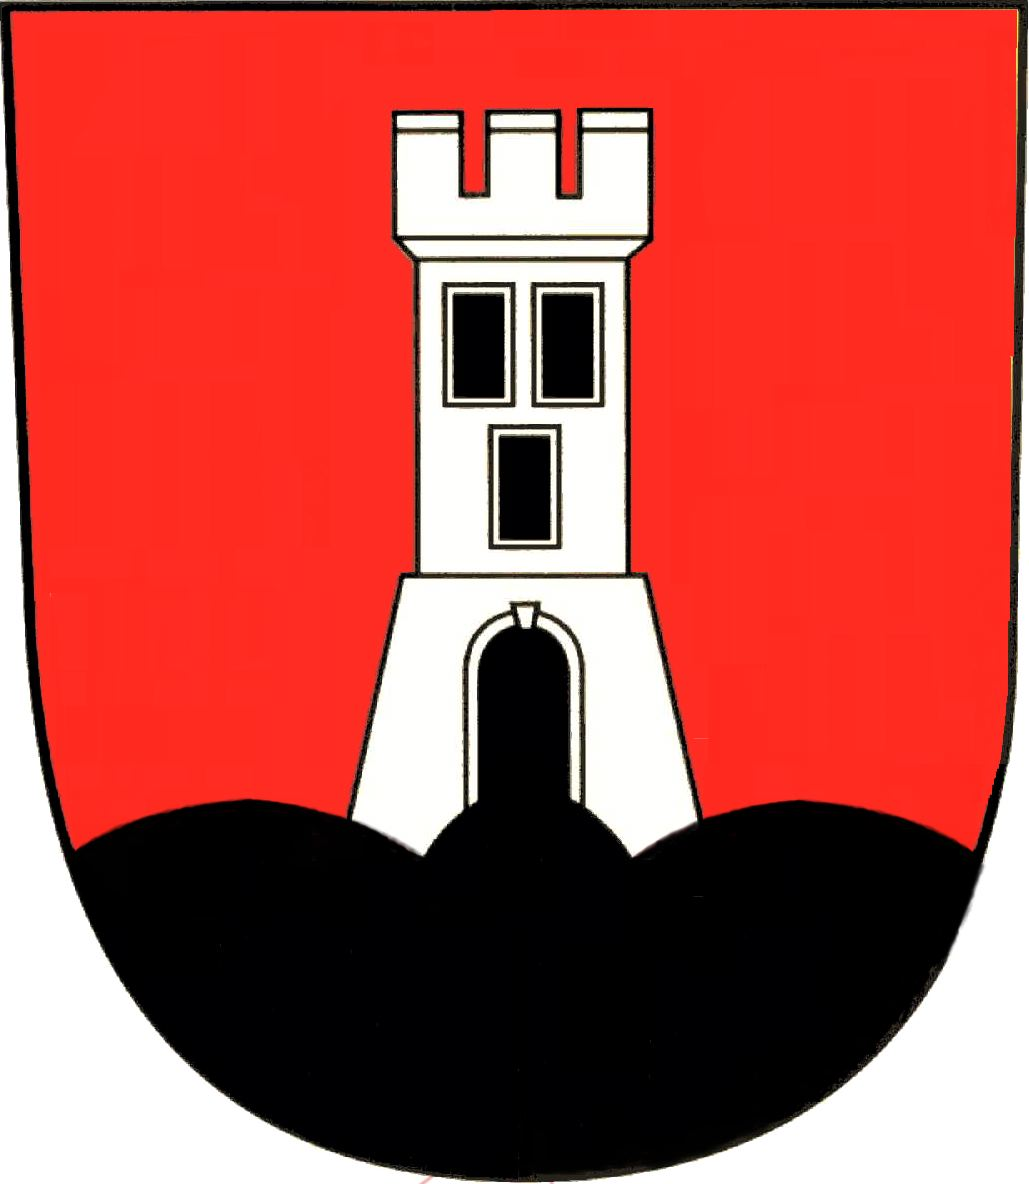 File:Coat of Arms Princely County of Schwarzenberg.jpg.